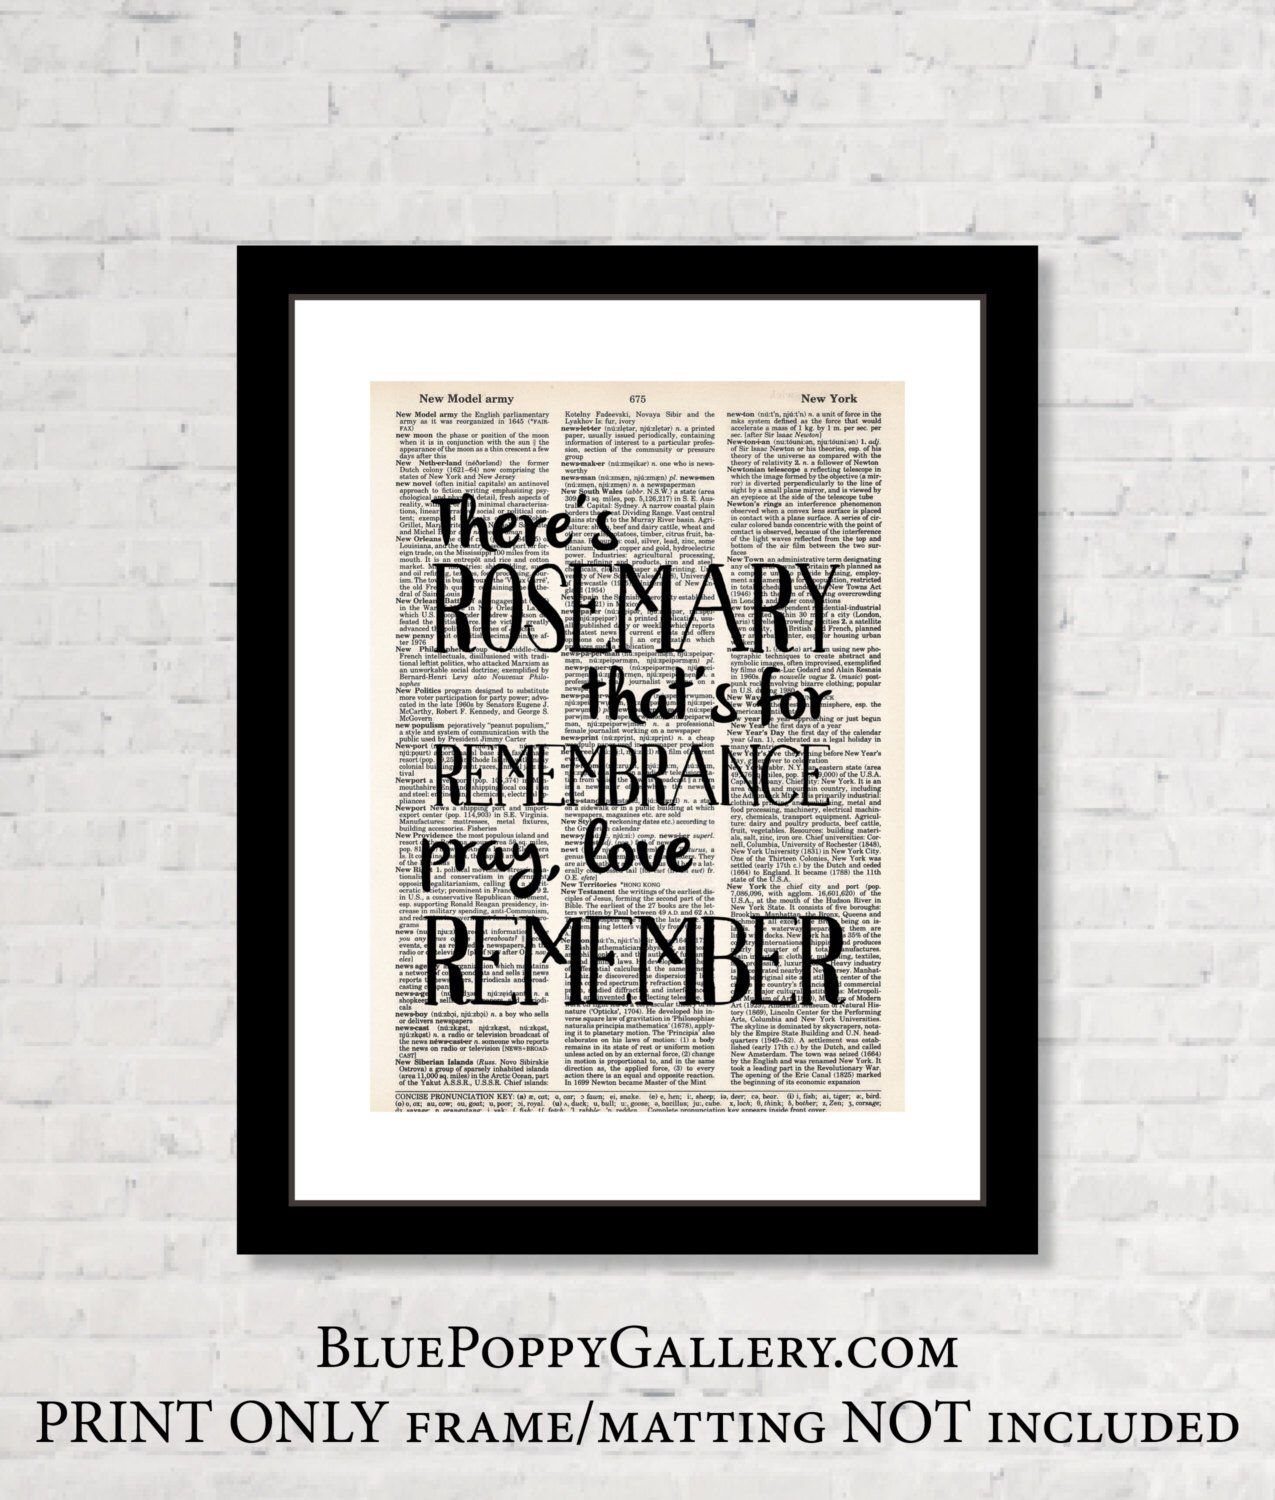 Theres Rosemary Thats For Remembrance Pray Love Remember